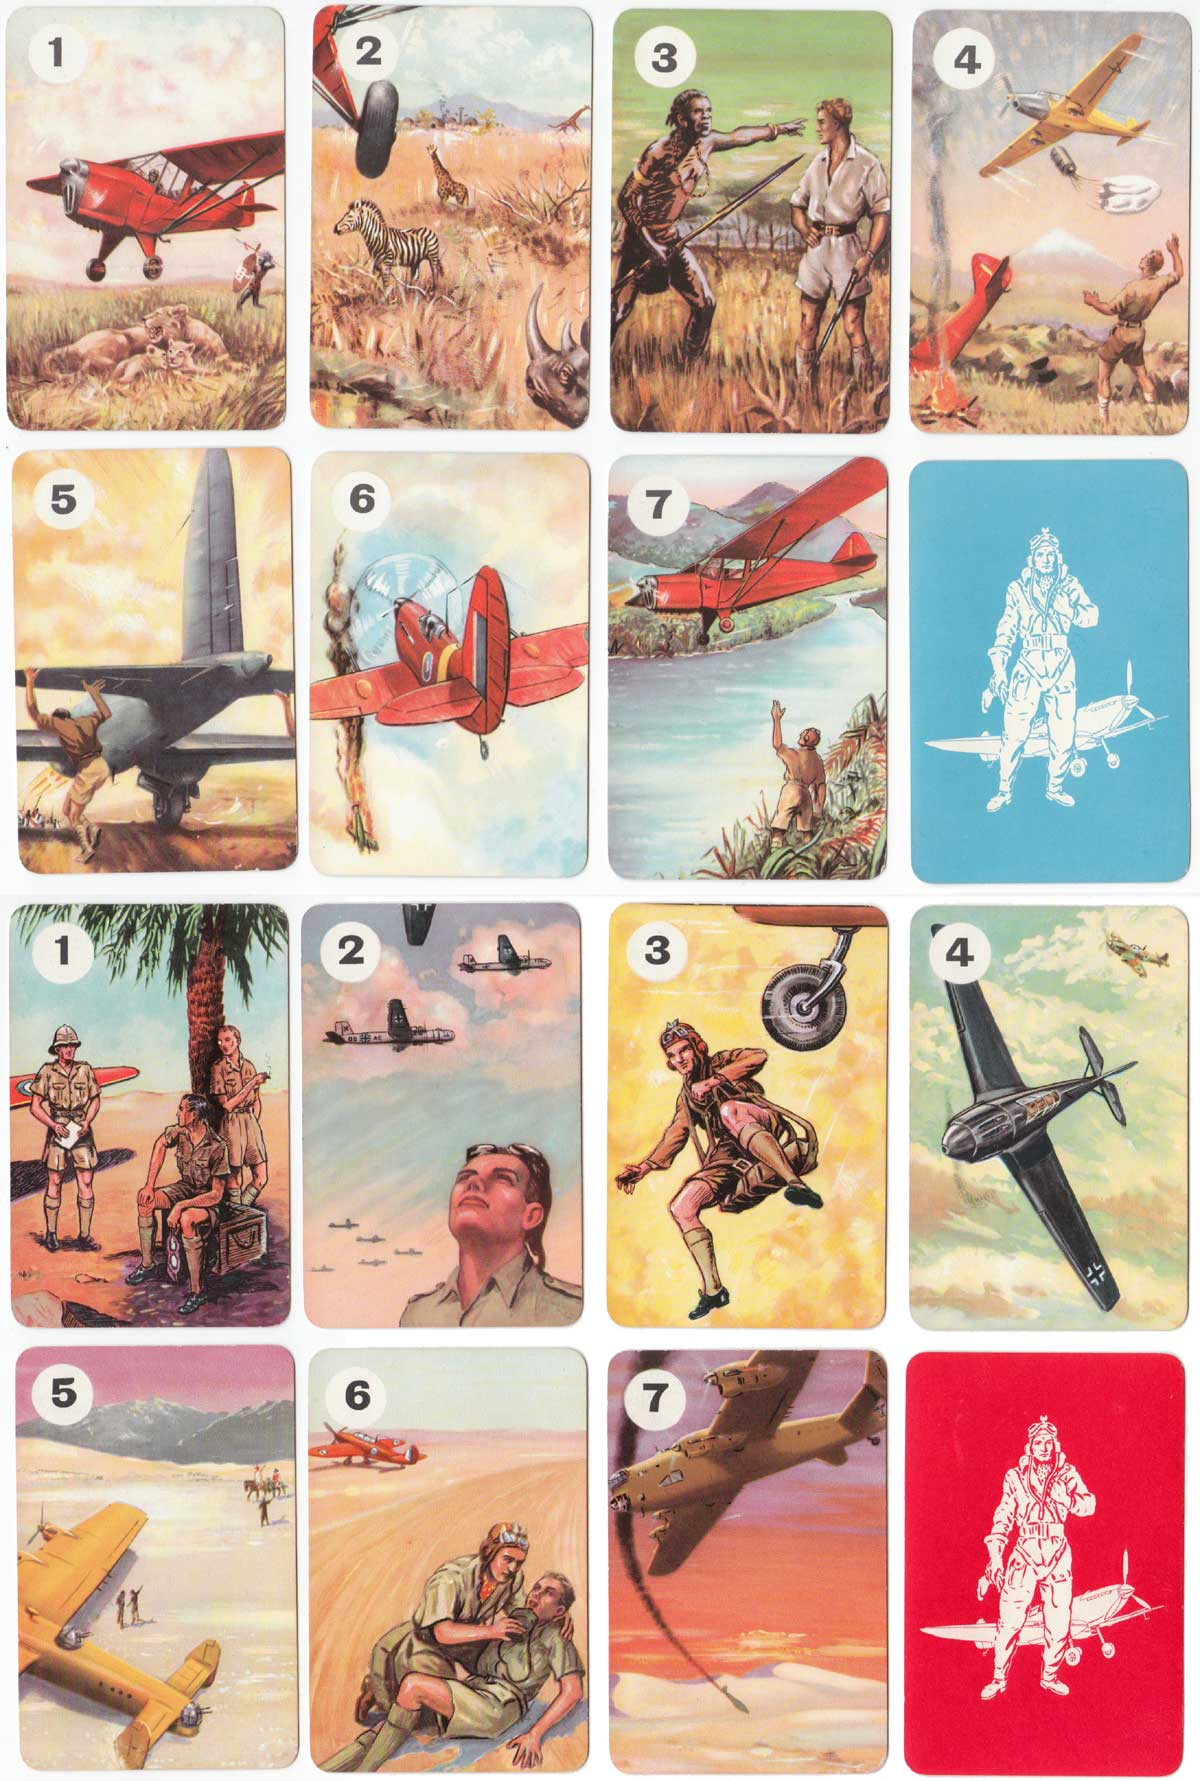 Biggles card game published by Pepys Games in 1955 based on the popular books by Capt W E Johns